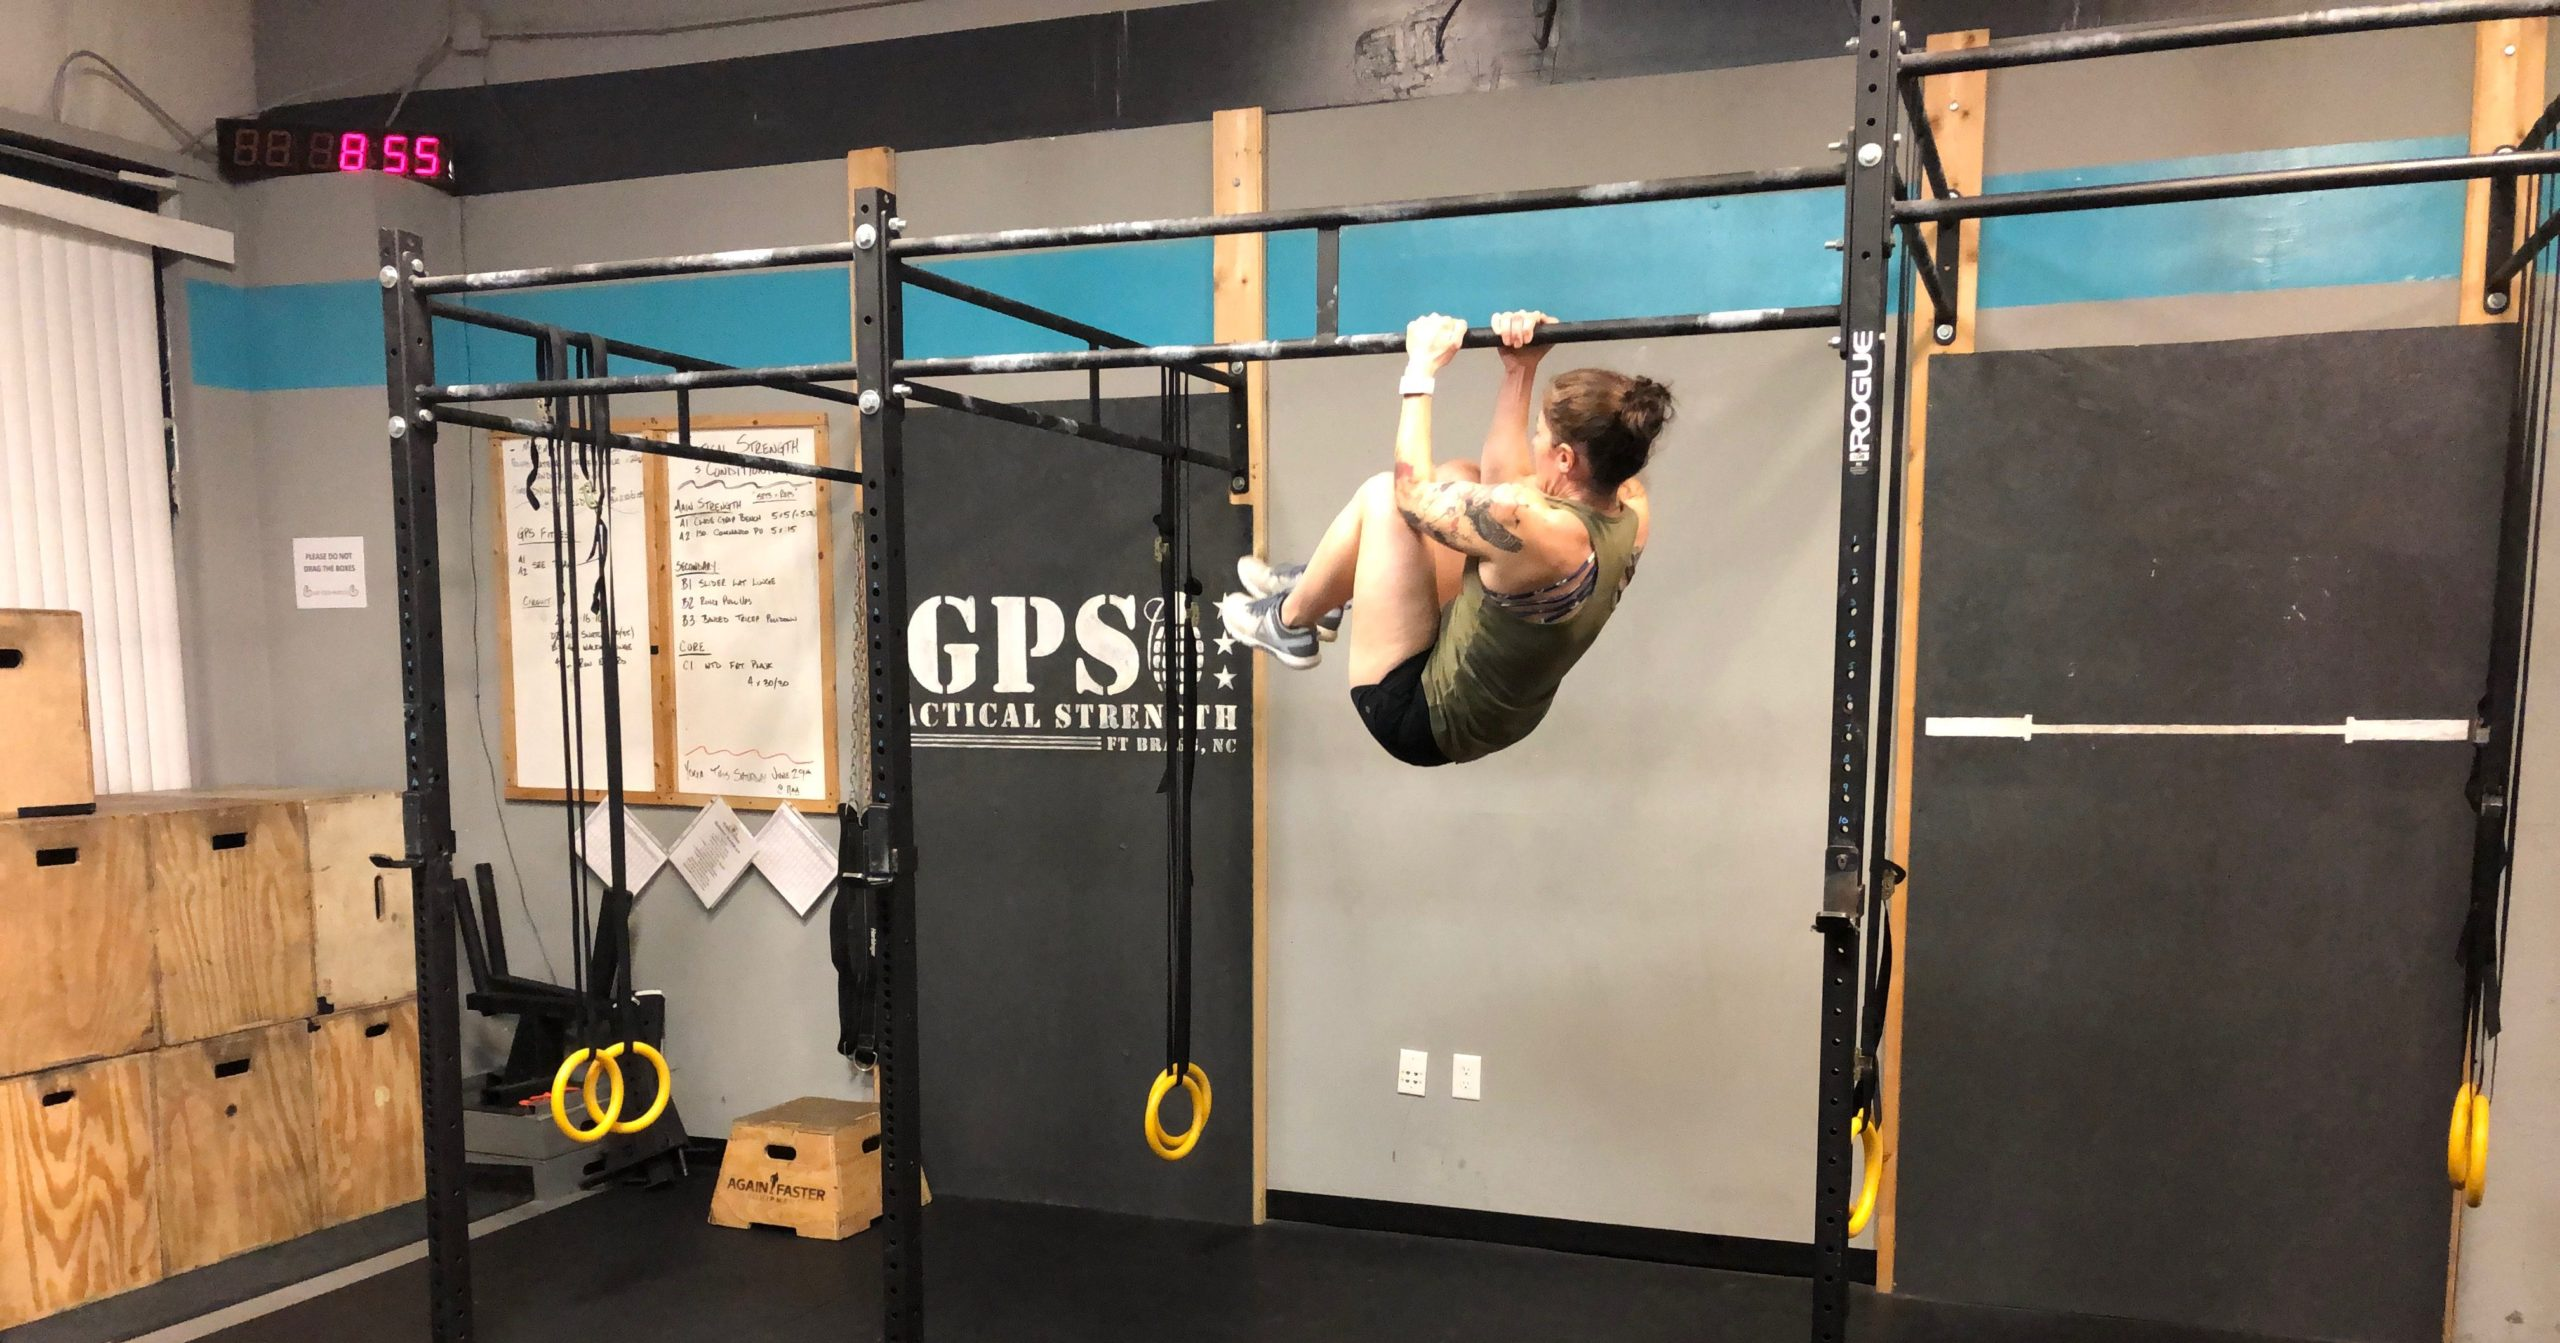 Tactical Training: The ACFT Leg Tuck | GPS Human Performance